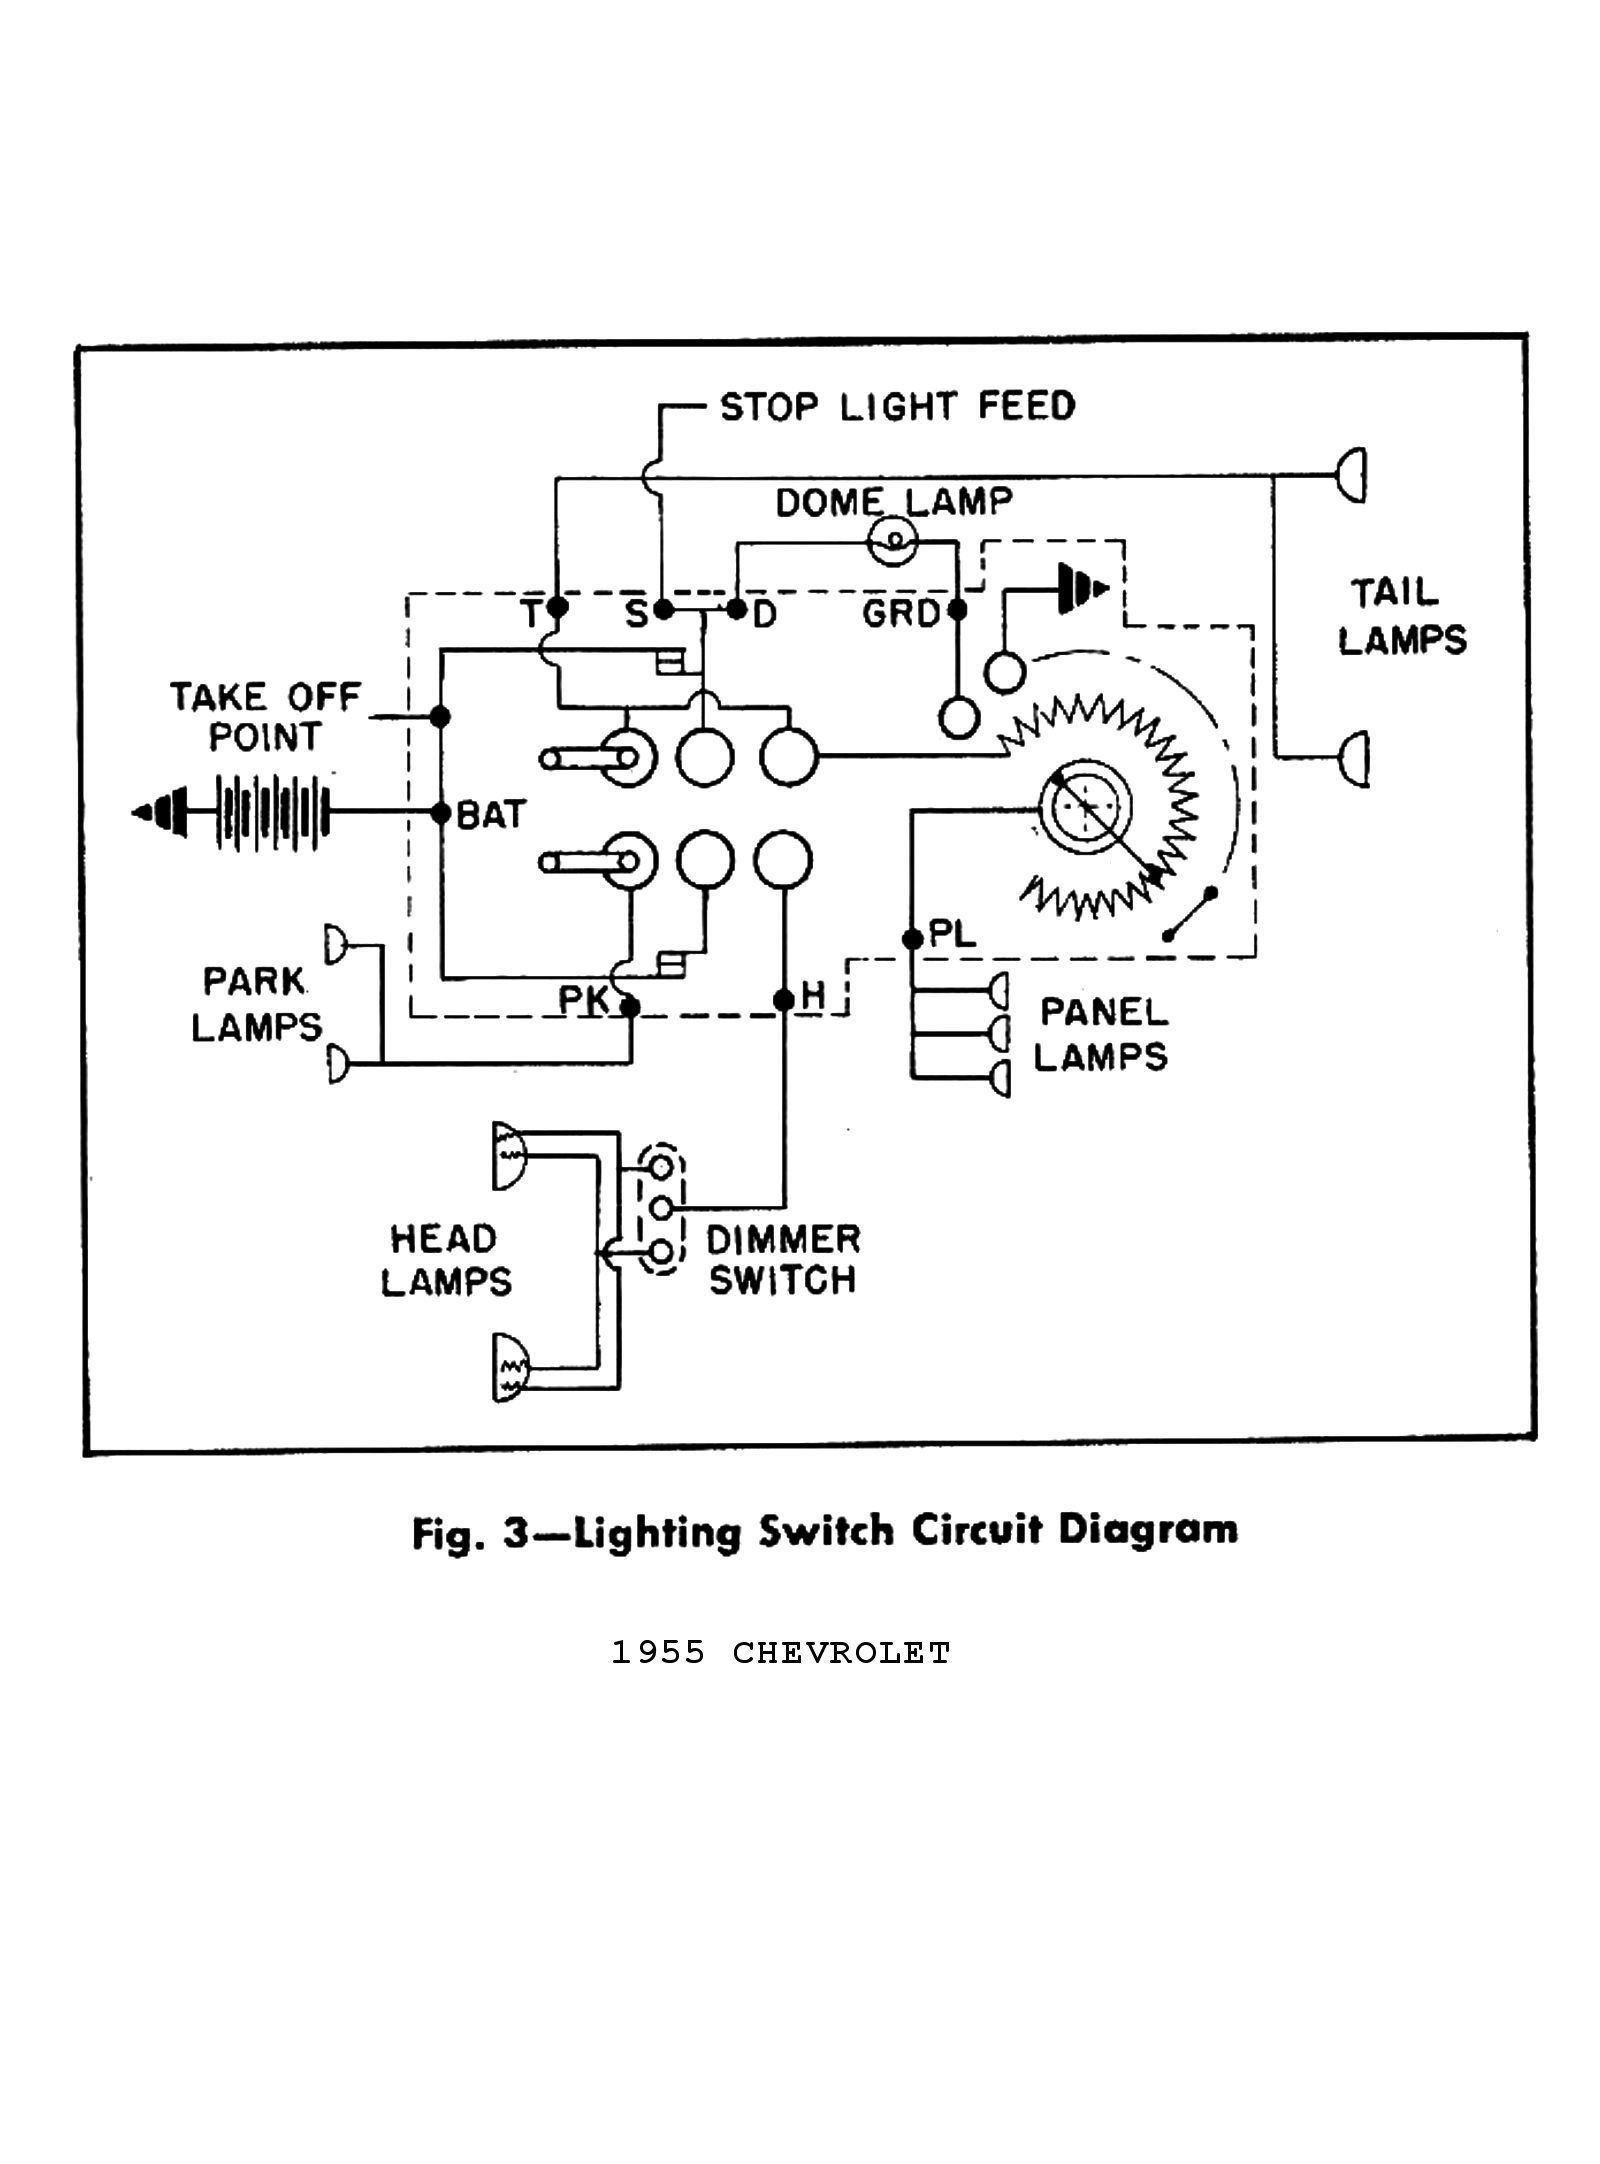 hight resolution of ignition wiring chevy wiring diagram toolboxuniversal ignition switch wiring diagram inspirational 1955 chevy of ignition wiring